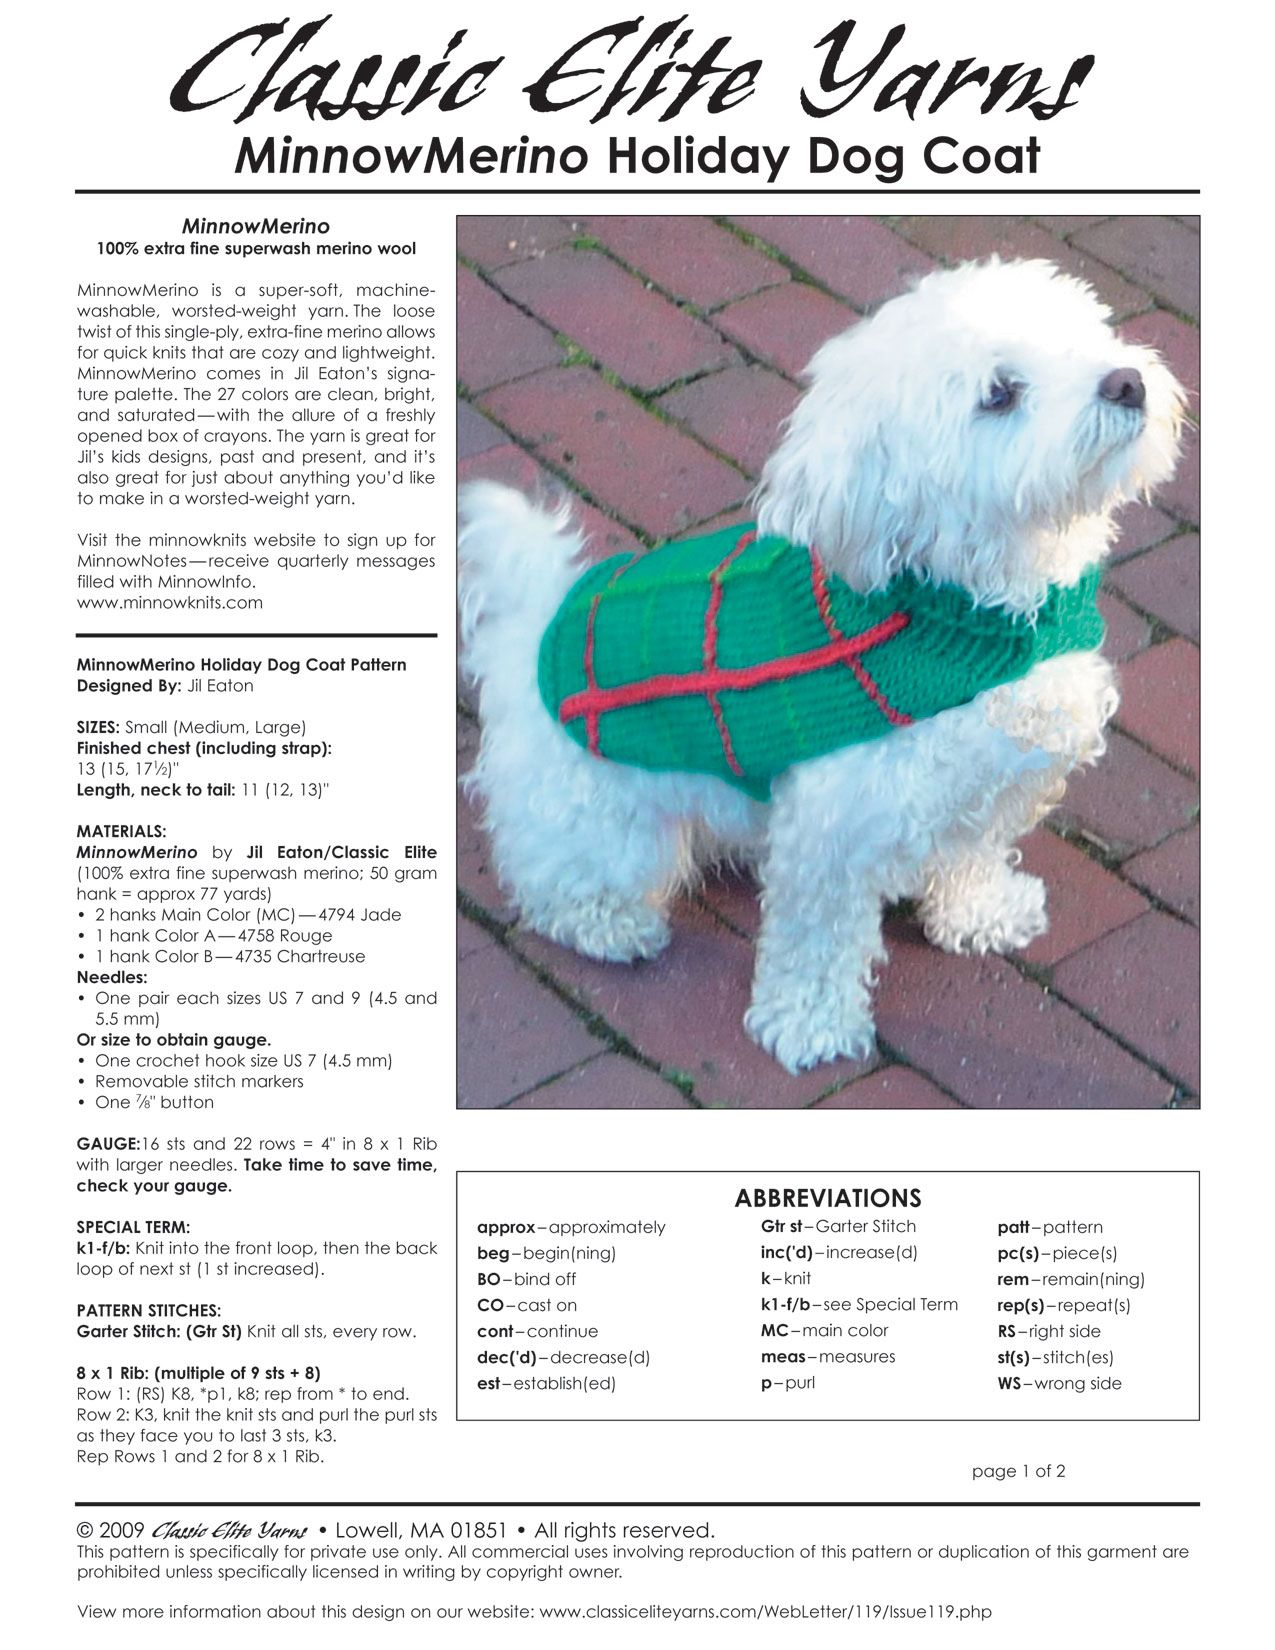 Crochet pattern central free pets crochet pattern link directory crochet pattern central free pets crochet pattern link directory bankloansurffo Choice Image